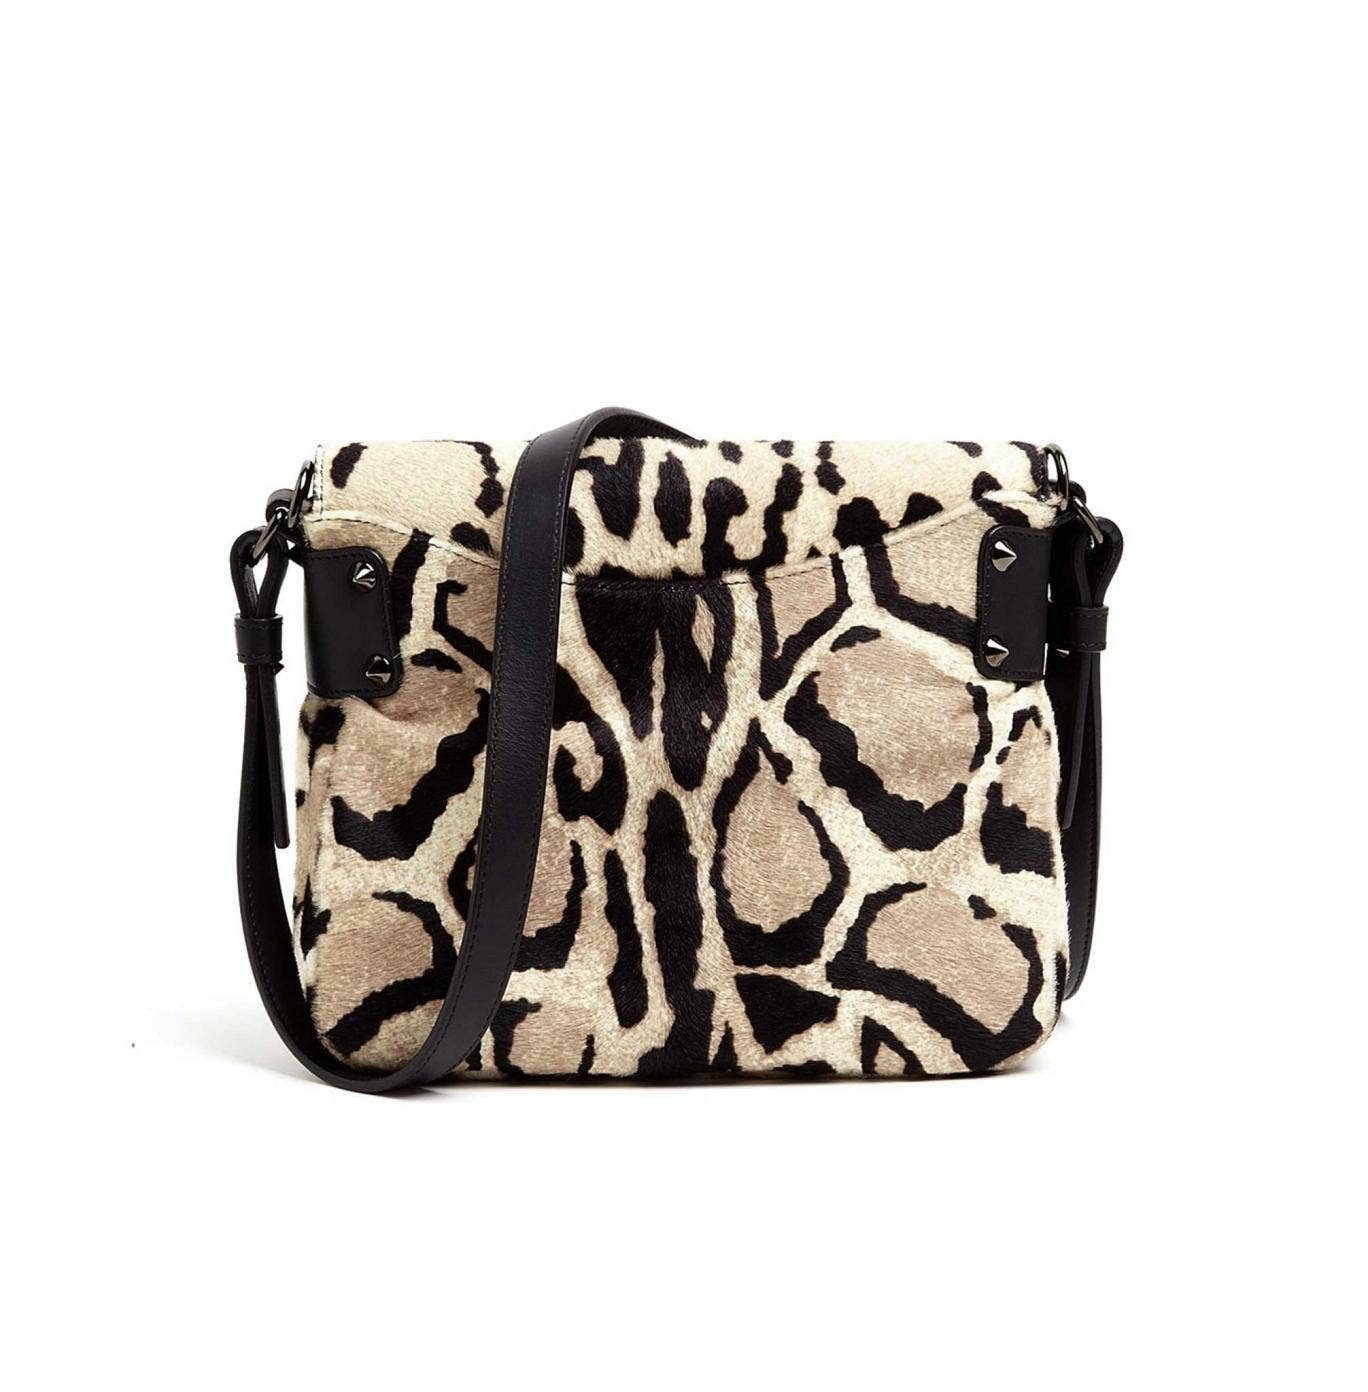 Elena Ghisellini pony-hair bag, £725, my-wardrobe.com